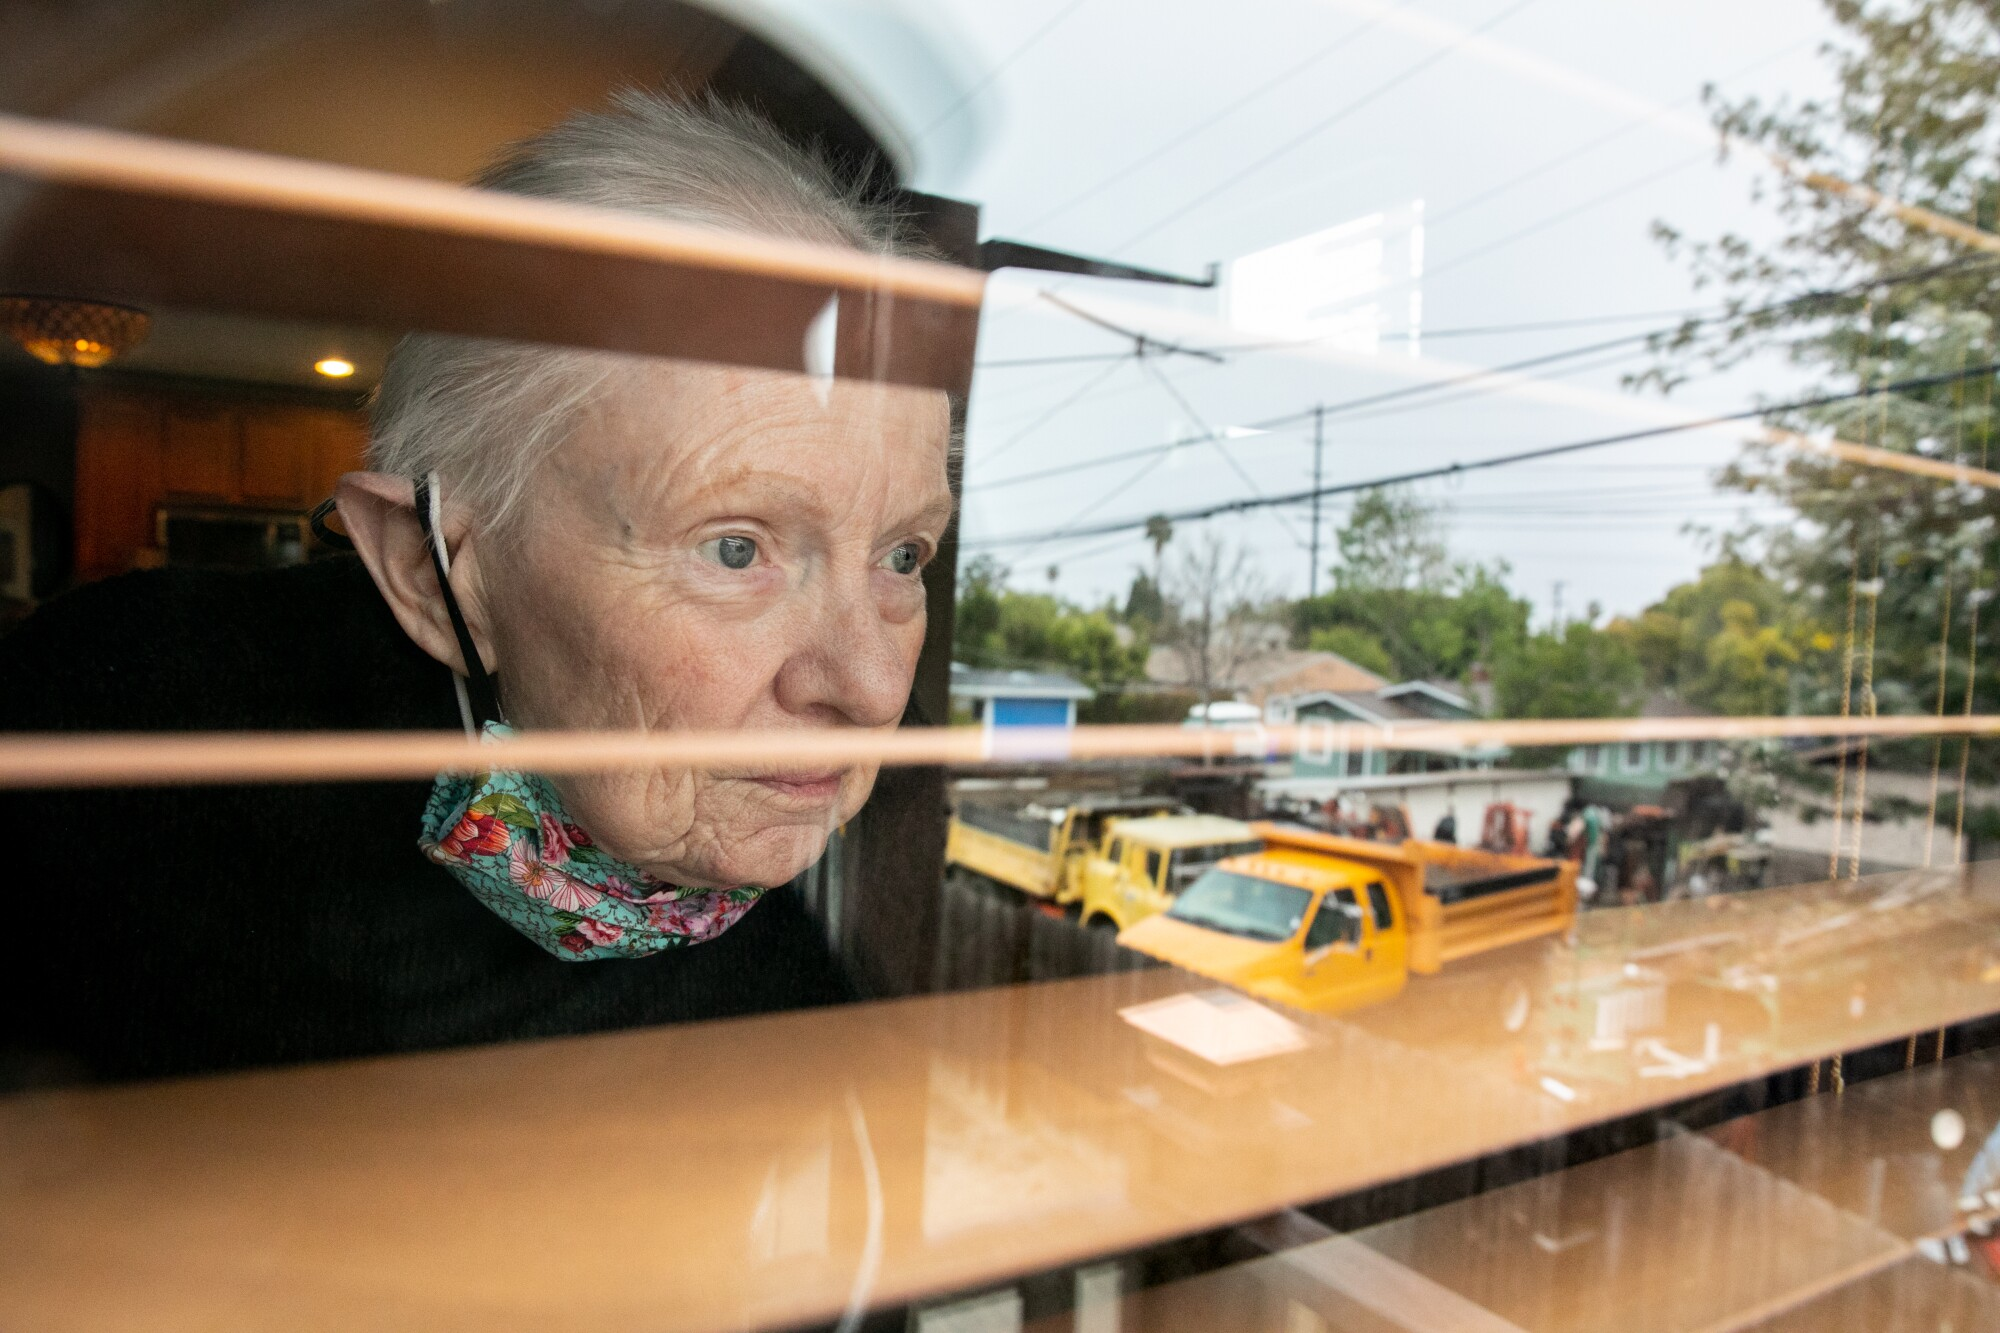 Joan Schomburg, 87, who's been living mostly in her home in isolation during the pandemic, poses at her home.